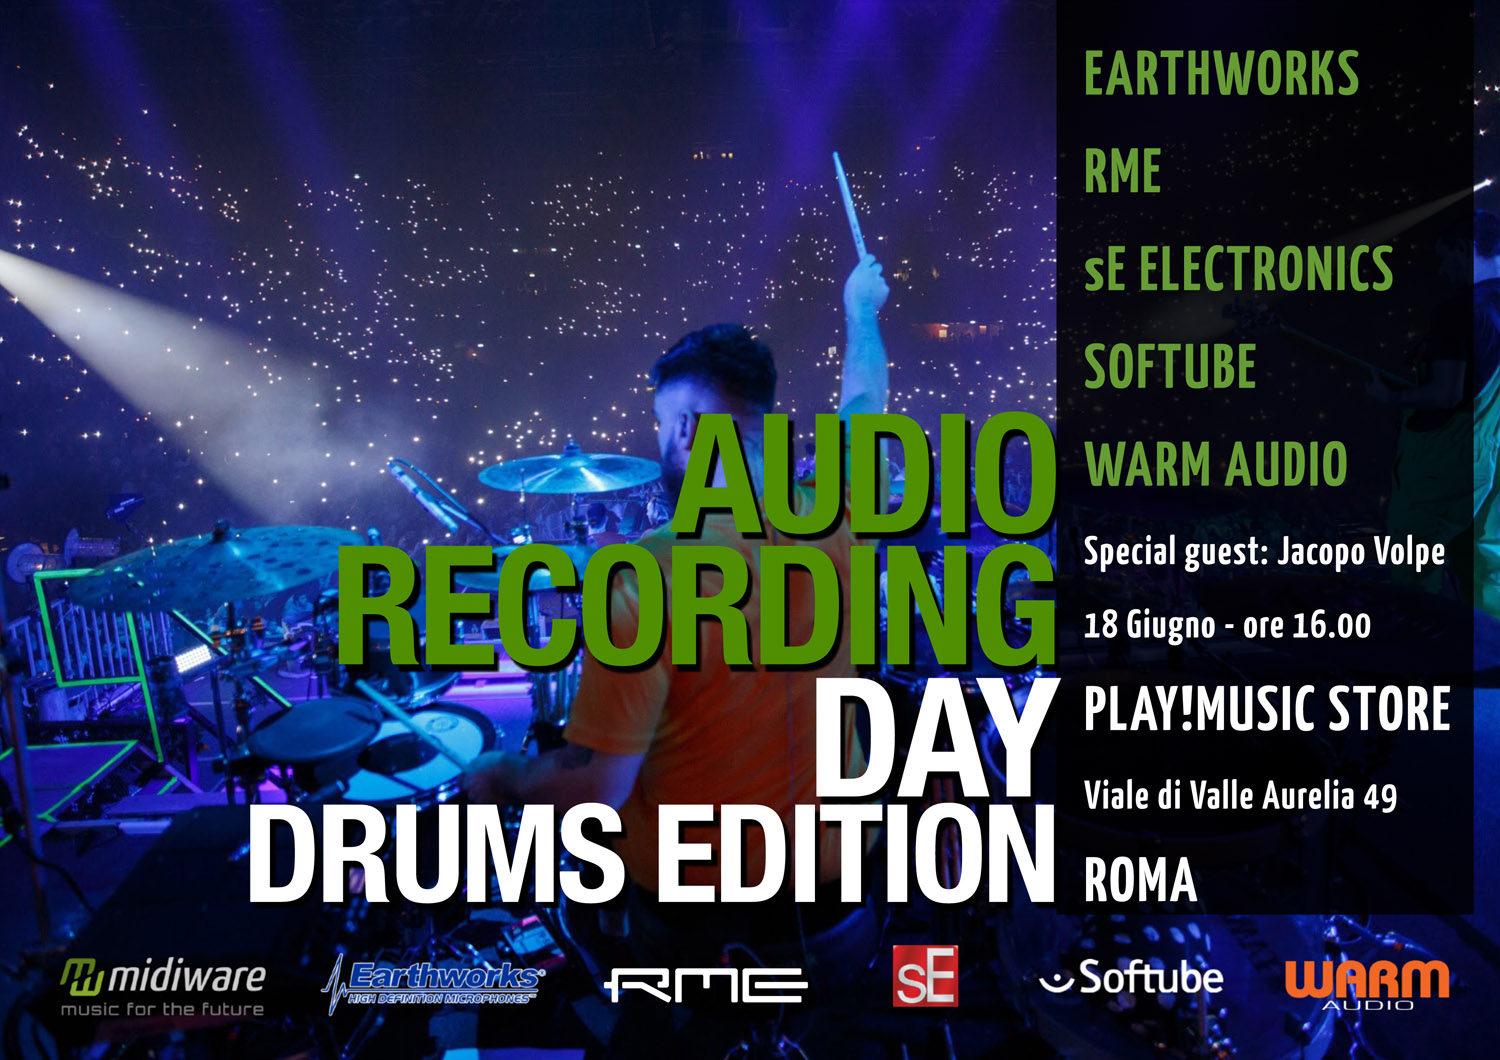 audiorecordingday2019playmusicDrumsEdition.jpg